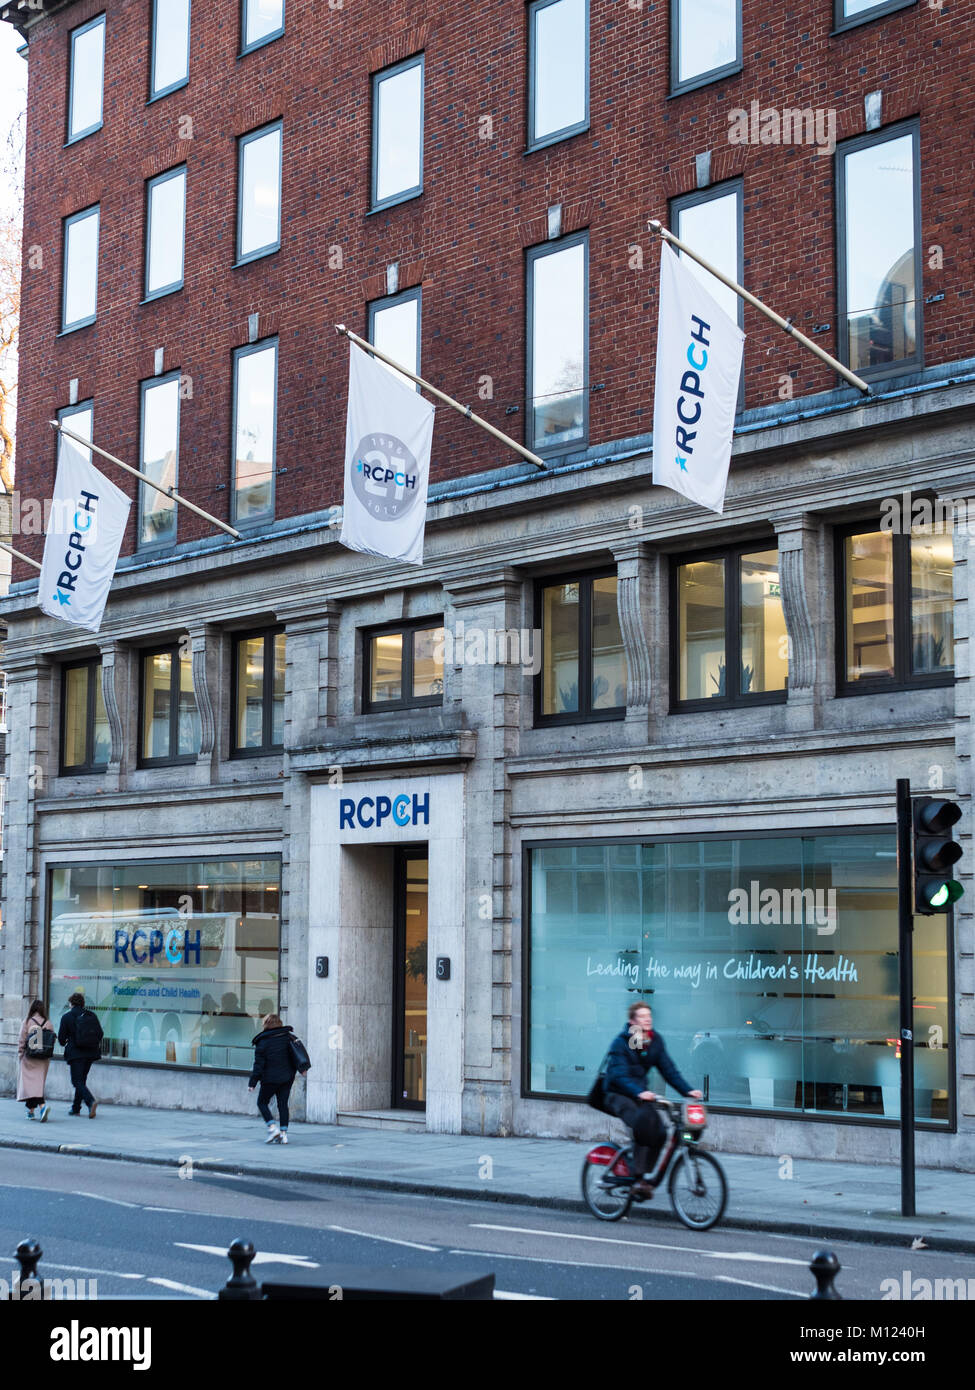 RCPCH - the Royal College of Paediatrics and Child Health on Theobalds Road in Central London, founded in 1996 - Stock Image